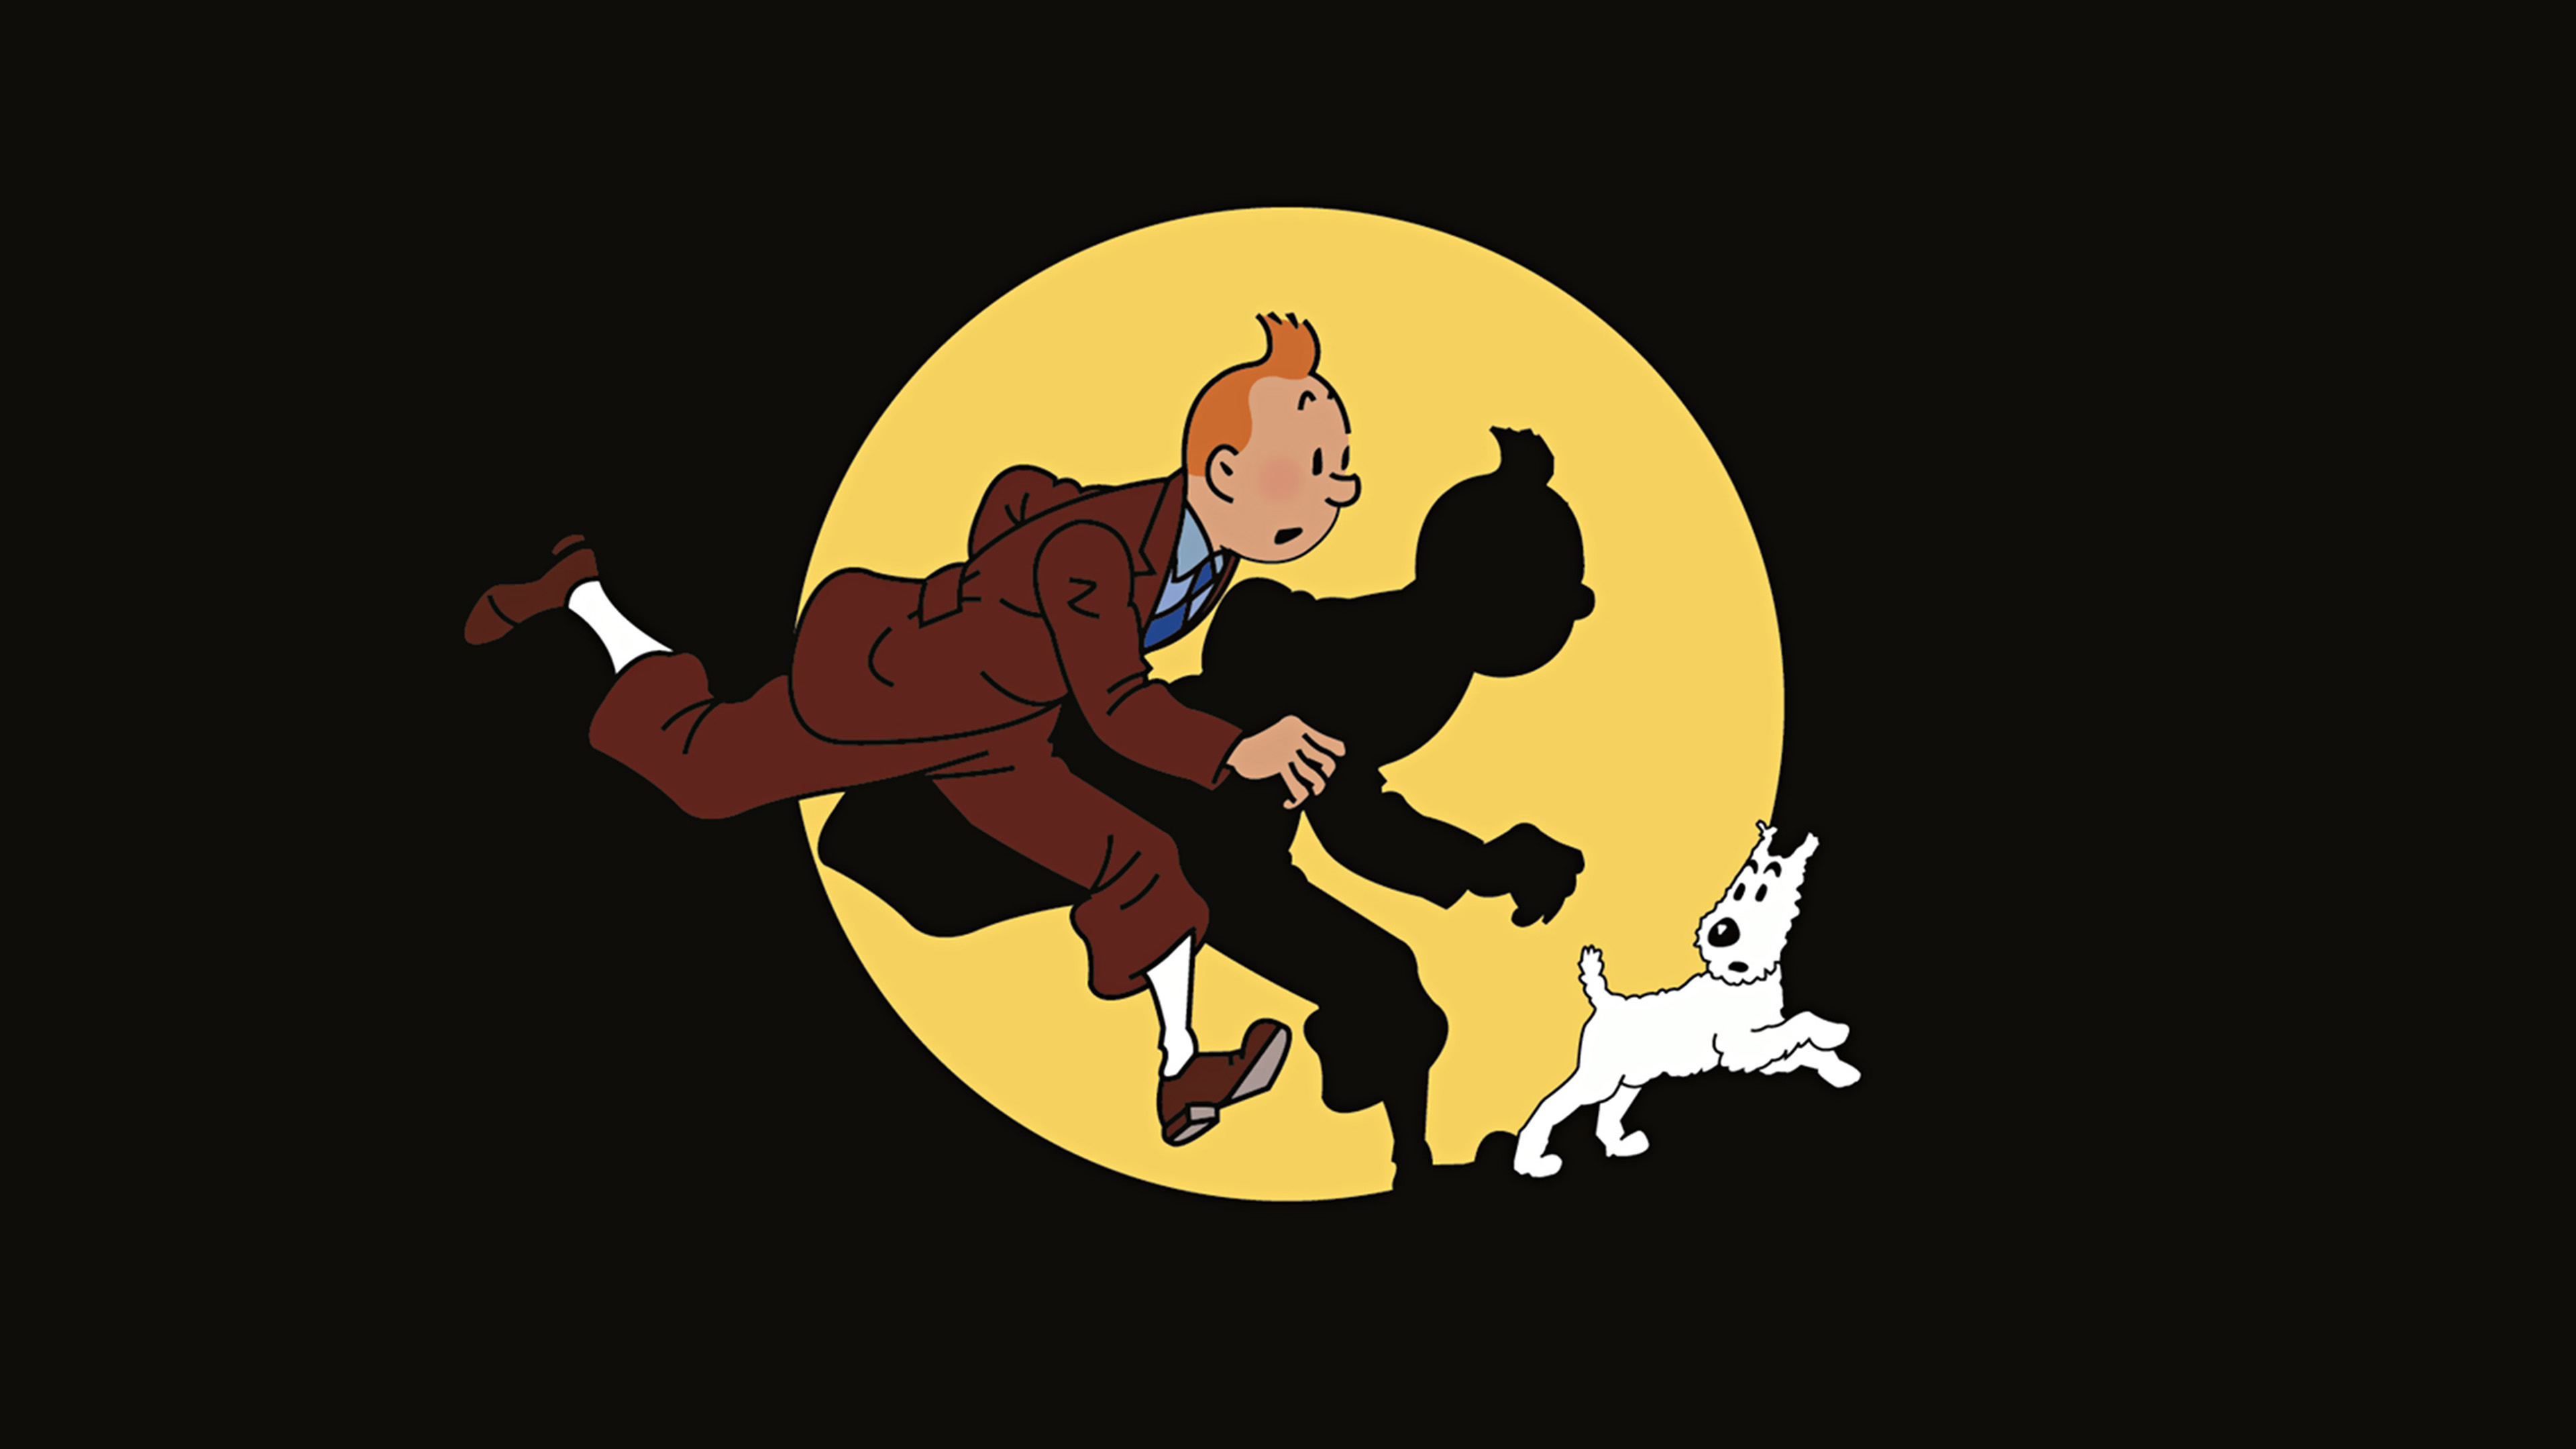 tintin wallpaper wide - photo #18